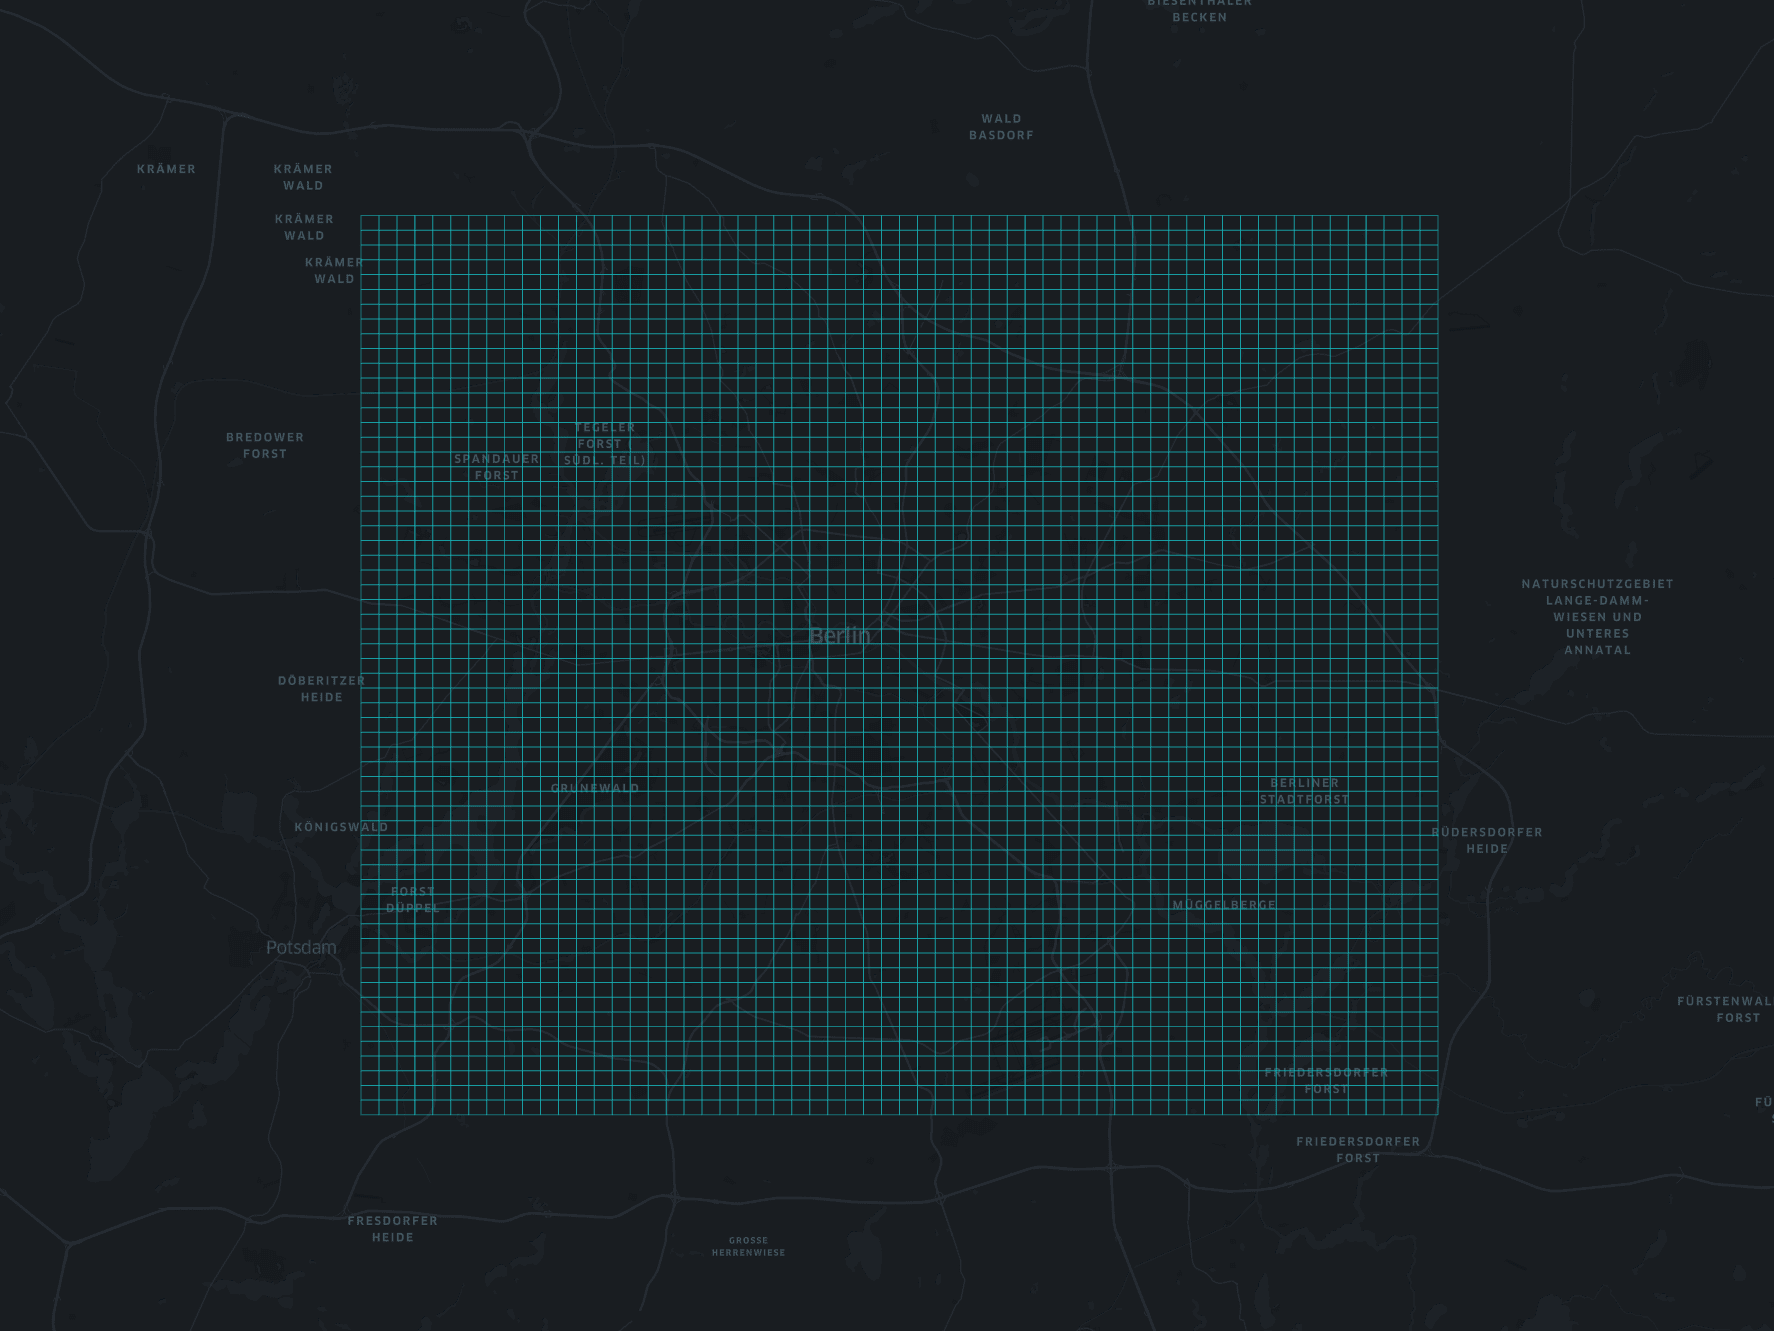 GeoHash grid of Berlin bounding box